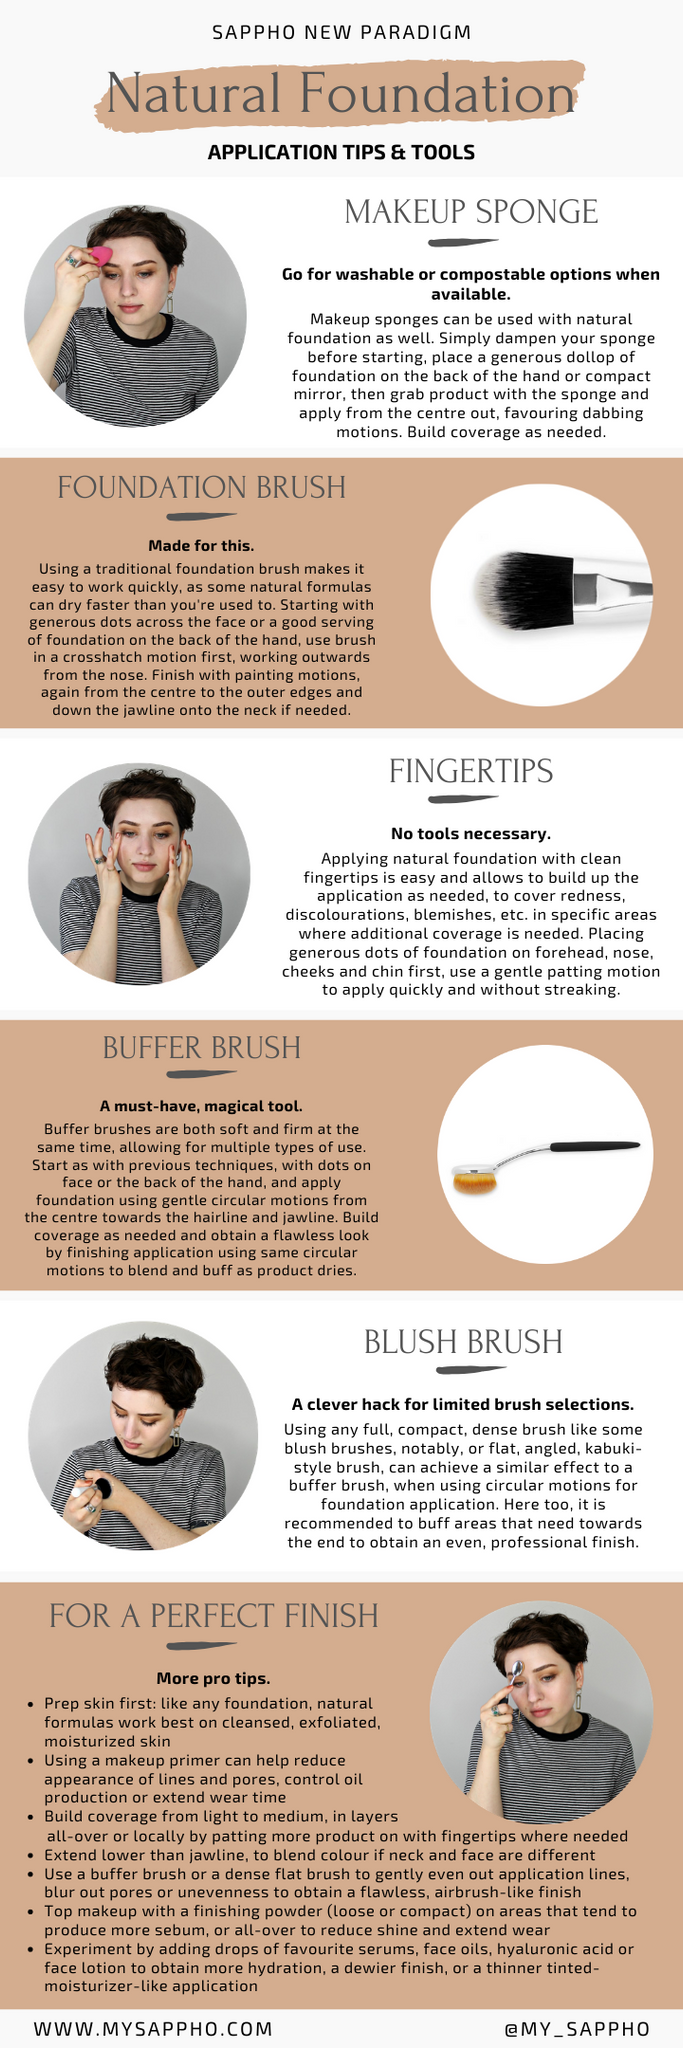 Pro makeup artist tips for natural foundation application